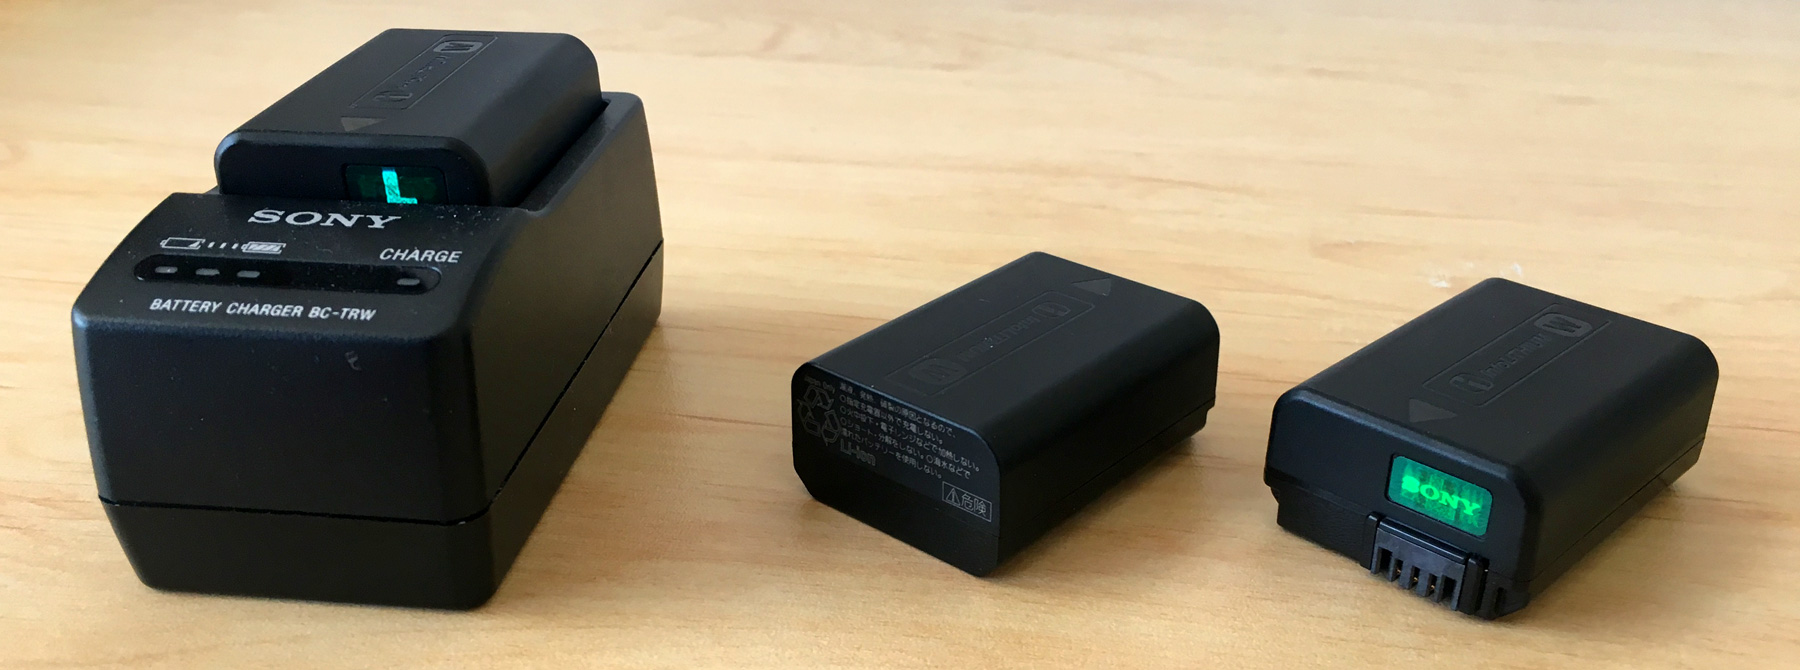 Sony Alpha Wall Charger & Batteries